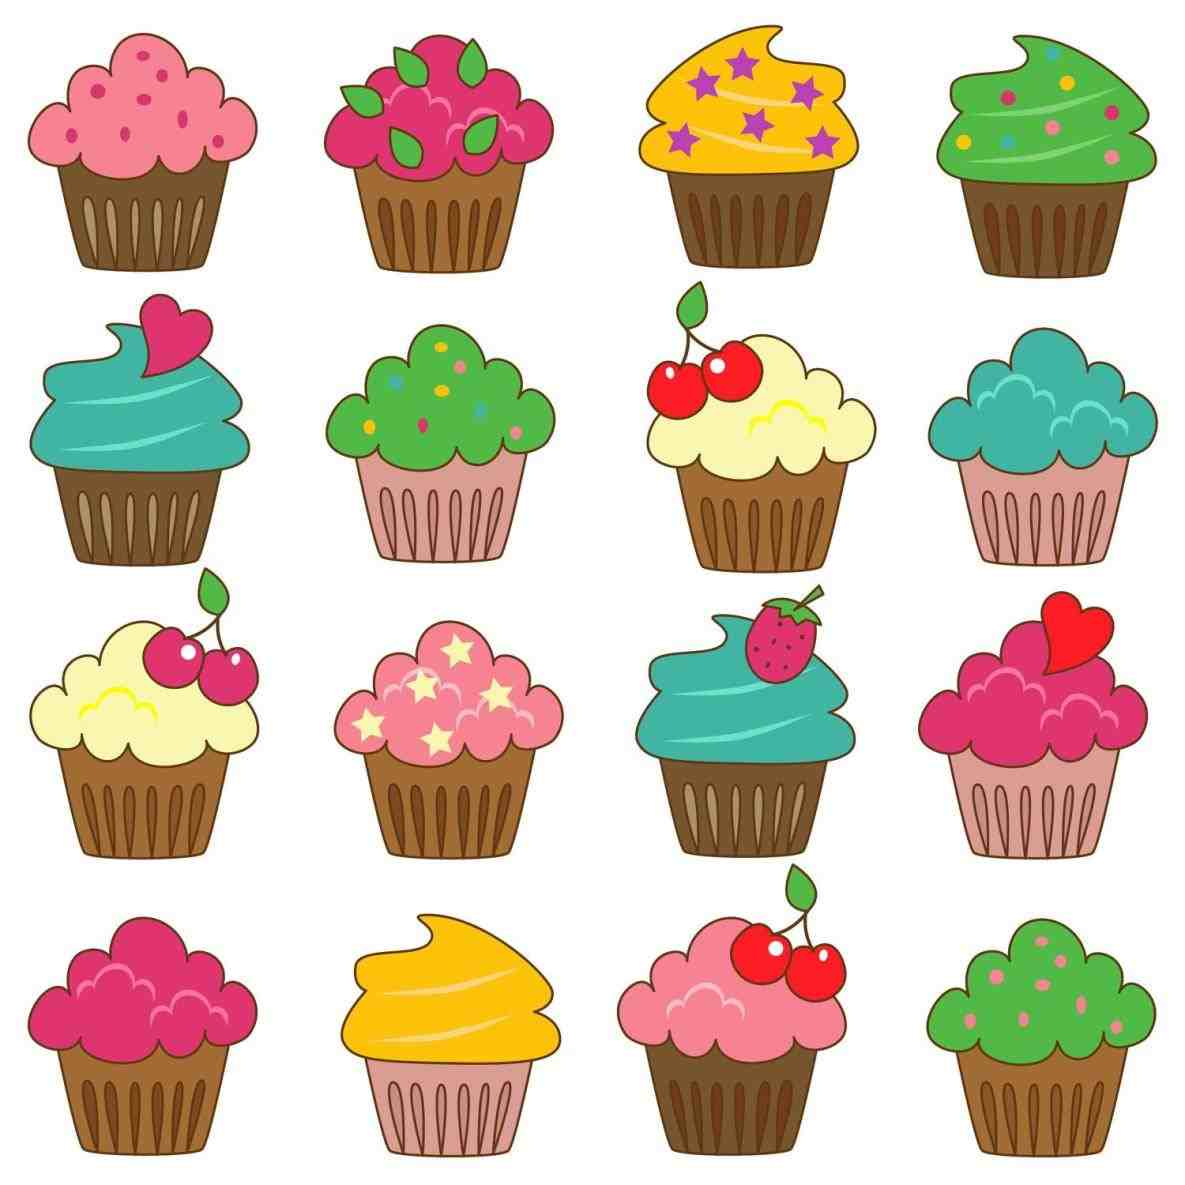 Muffin clipart colored cupcake. Cup cake free download